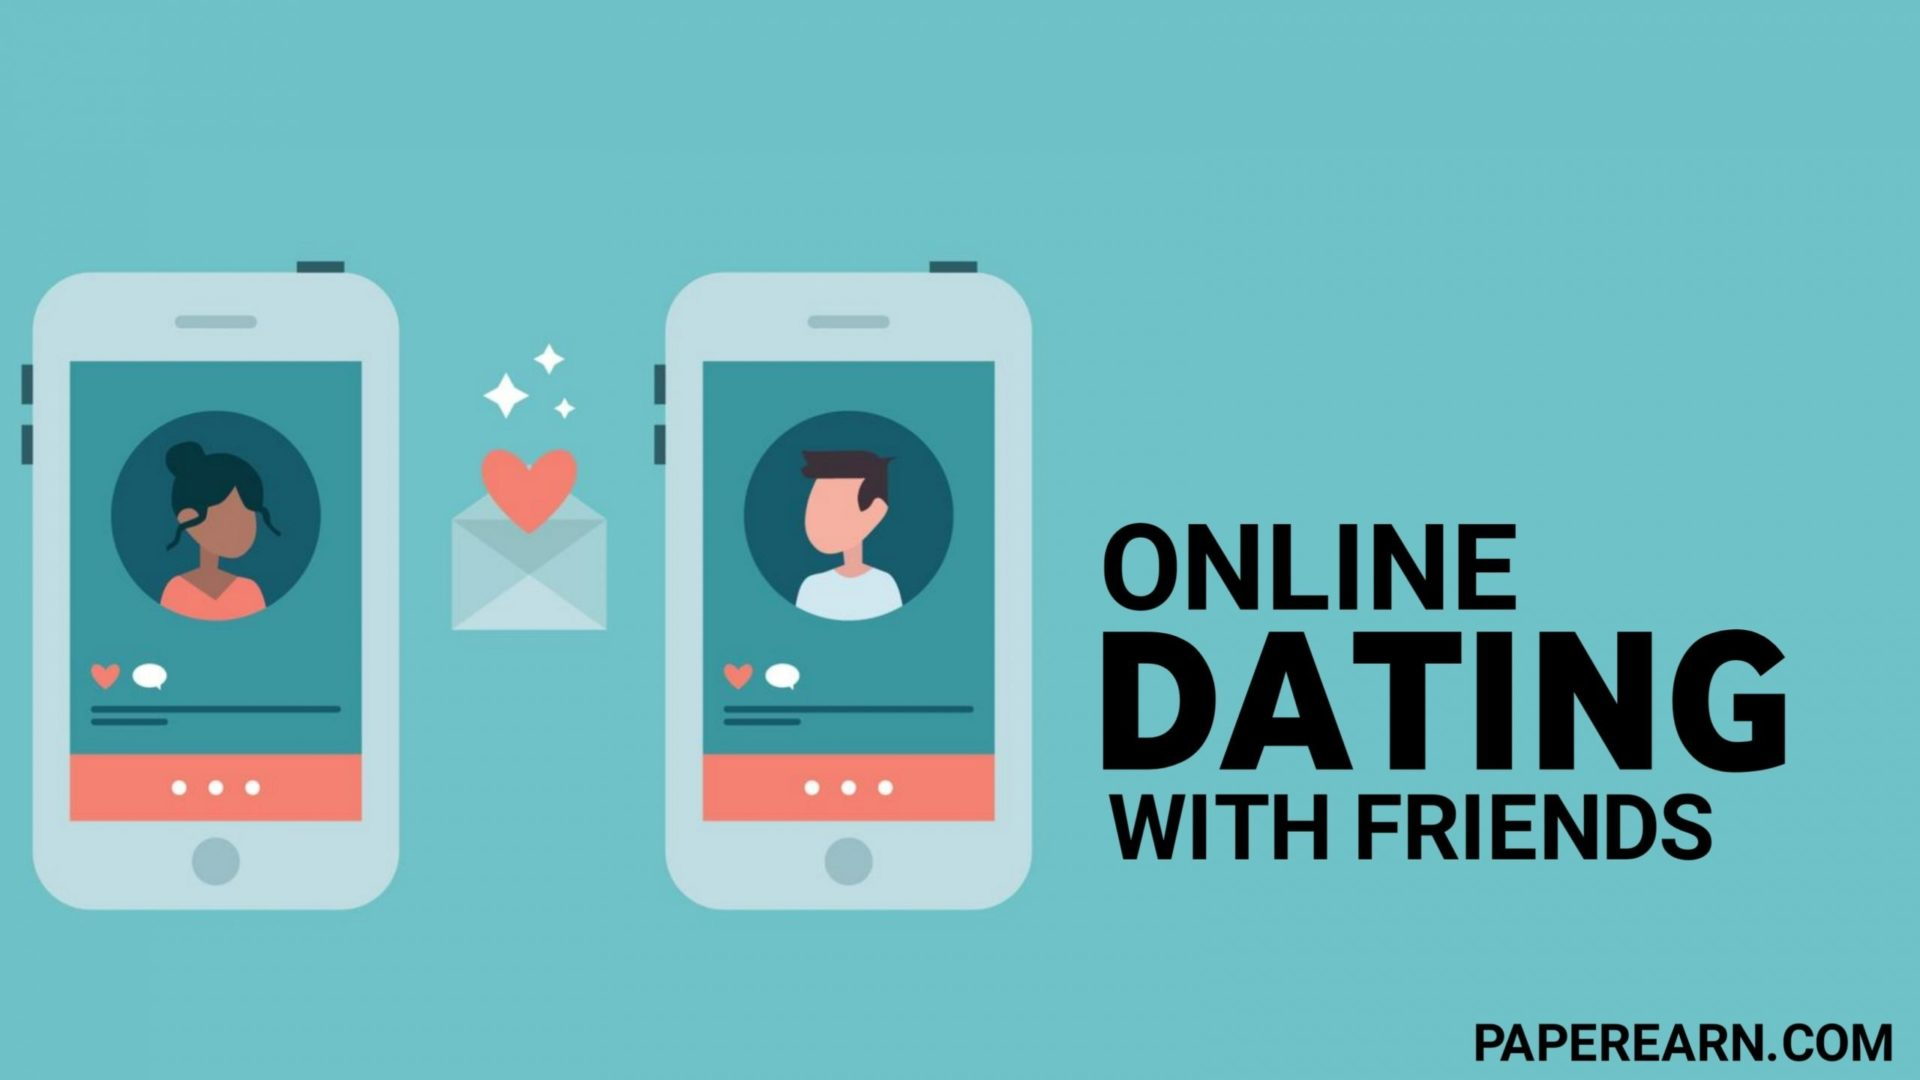 Barfi discovers love through video chat App - paperearn.com